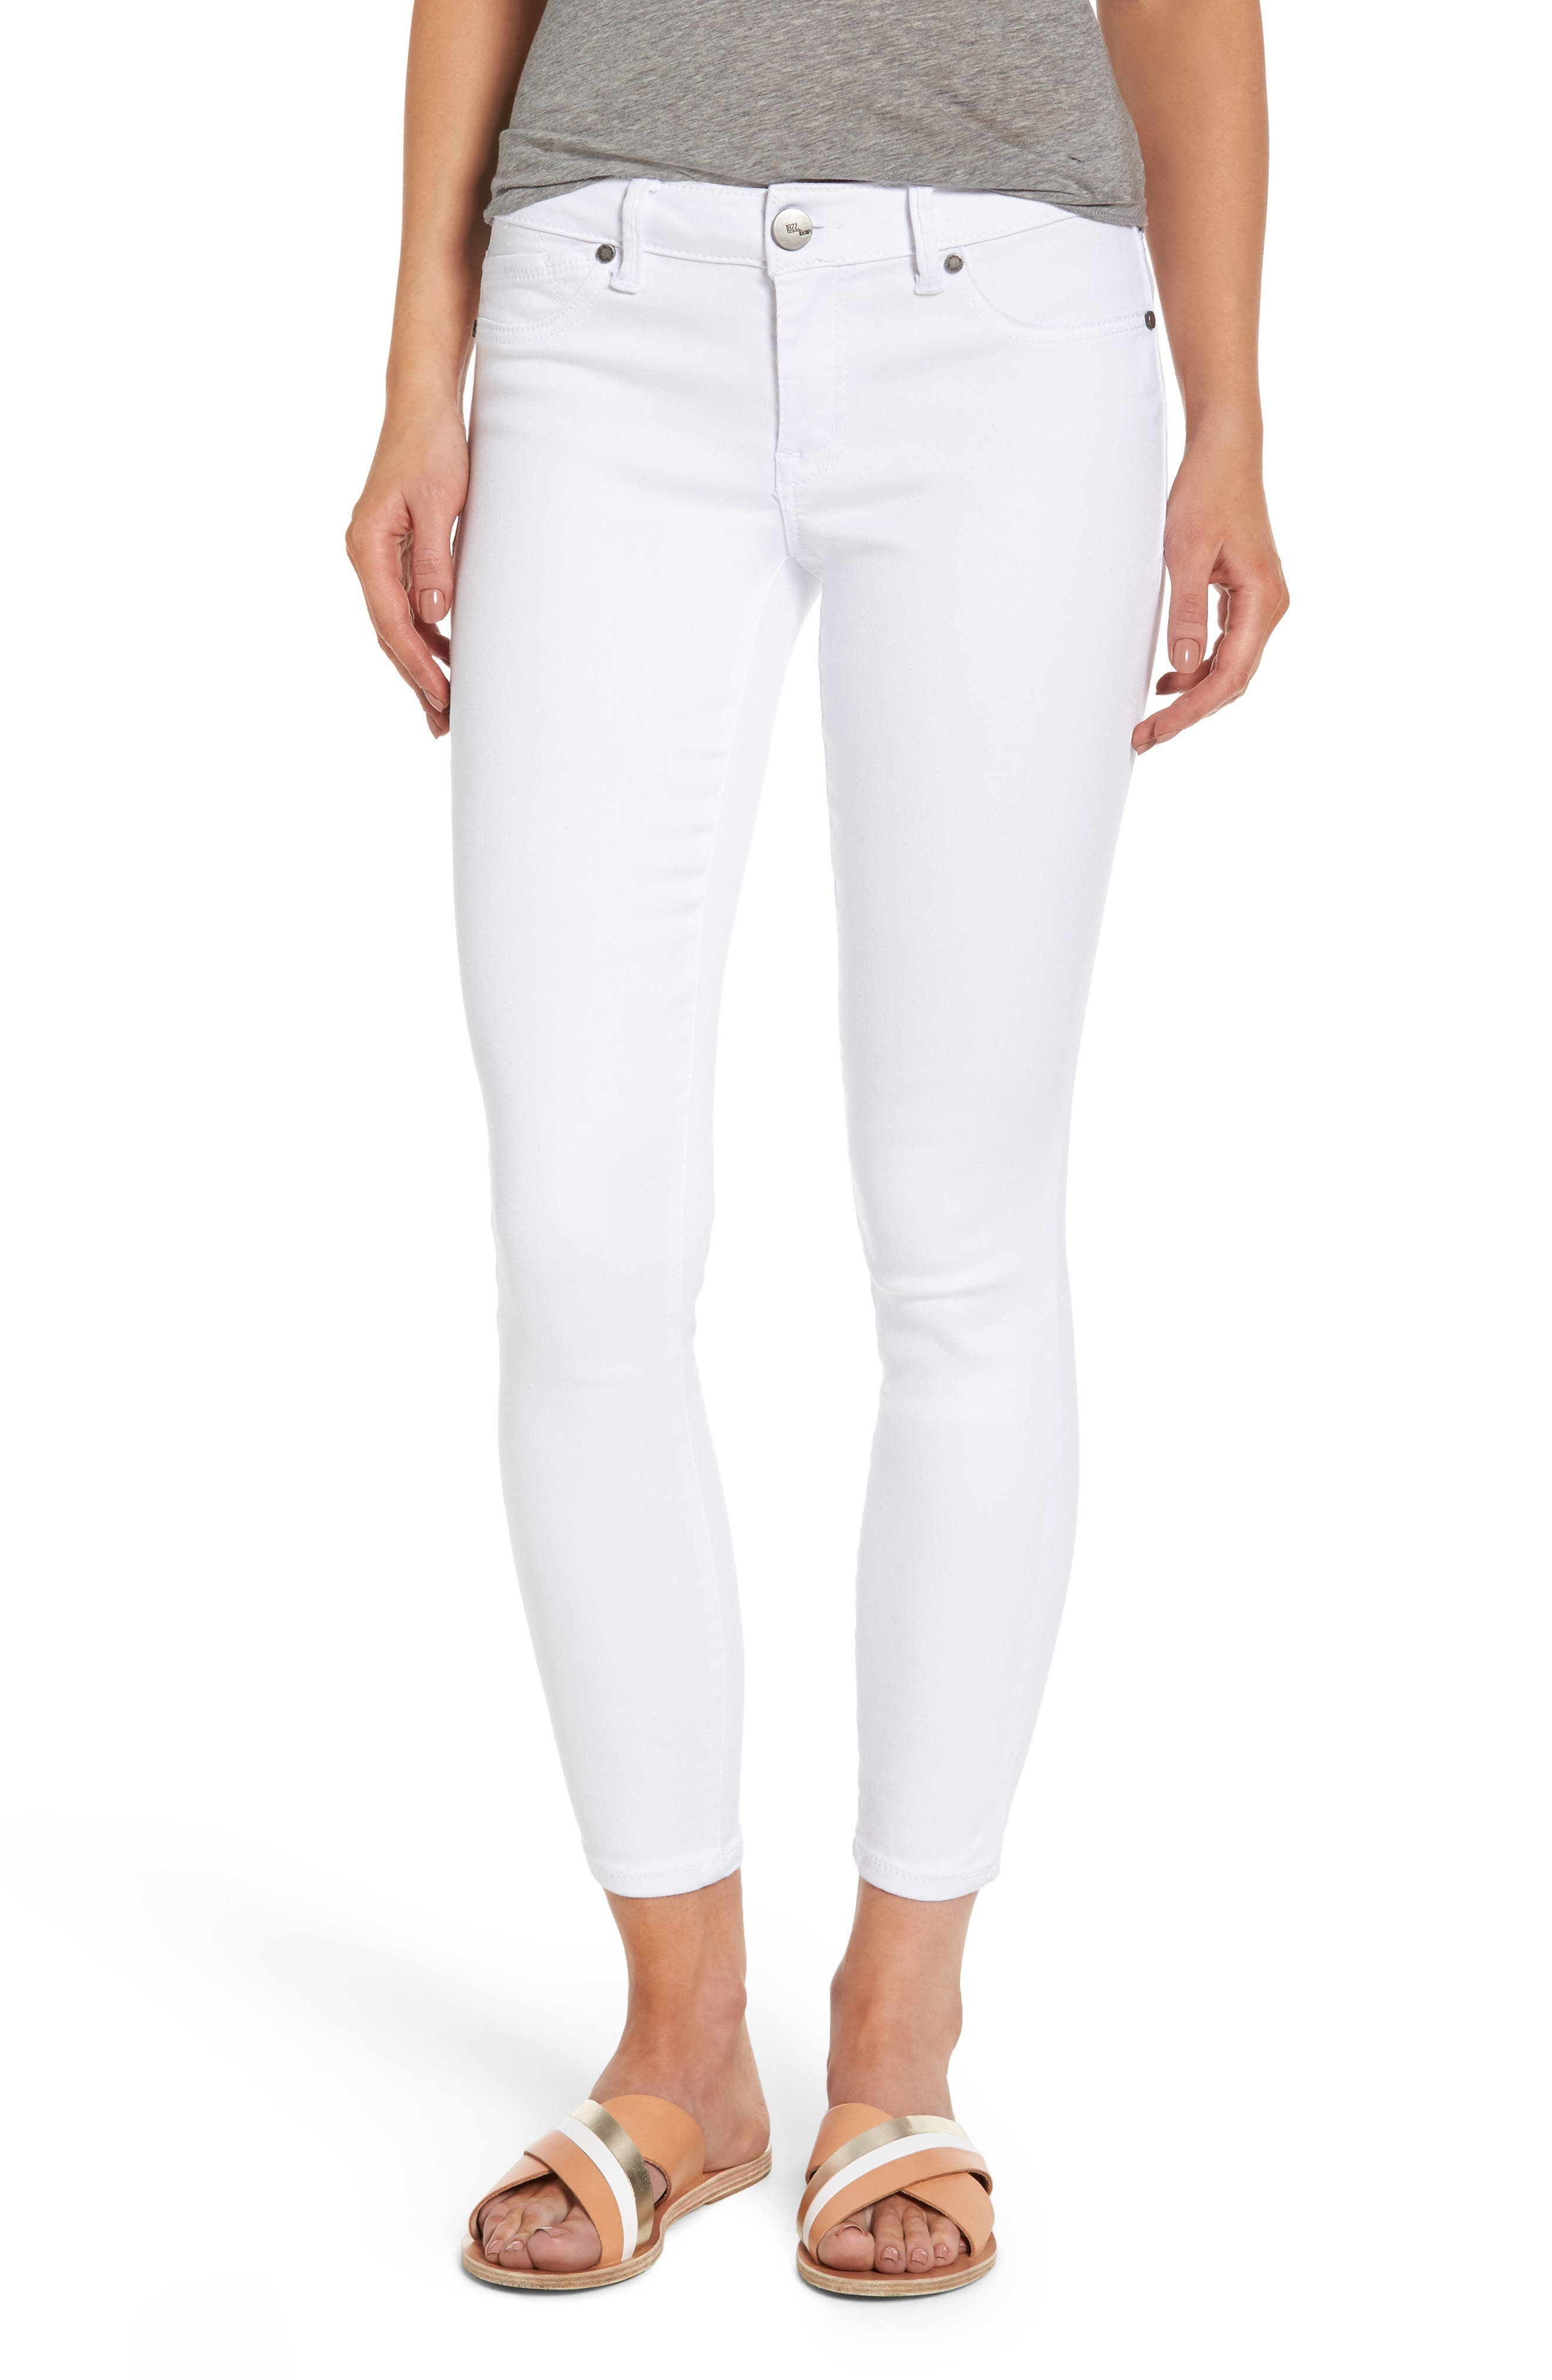 1822 Butter Skinny Jeans,                         Main,                         color, Wht